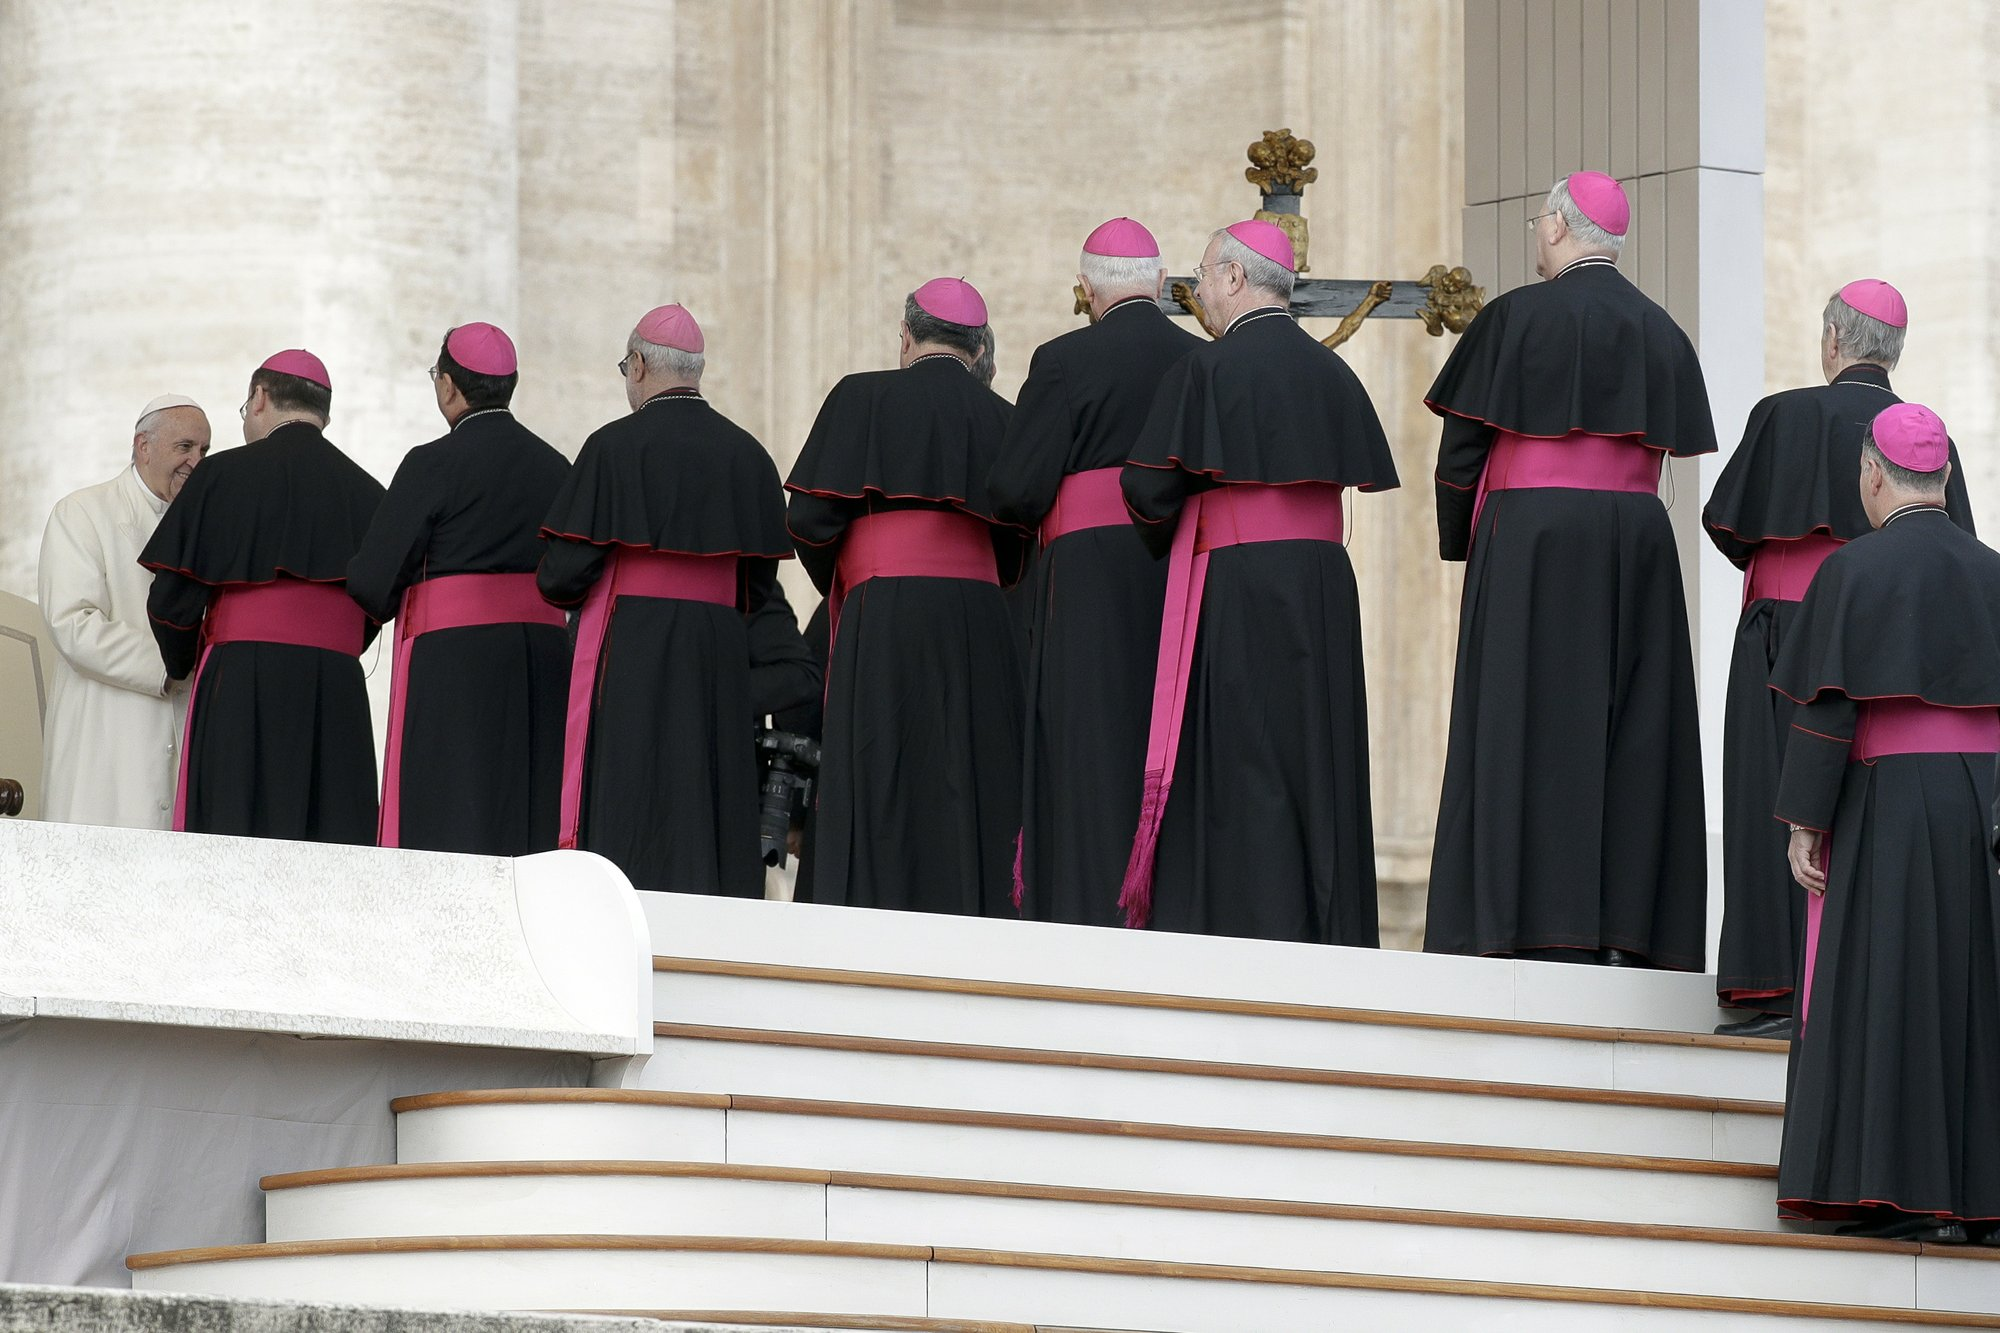 Popes Briefing System Under Scrutiny After Chile Gaffe